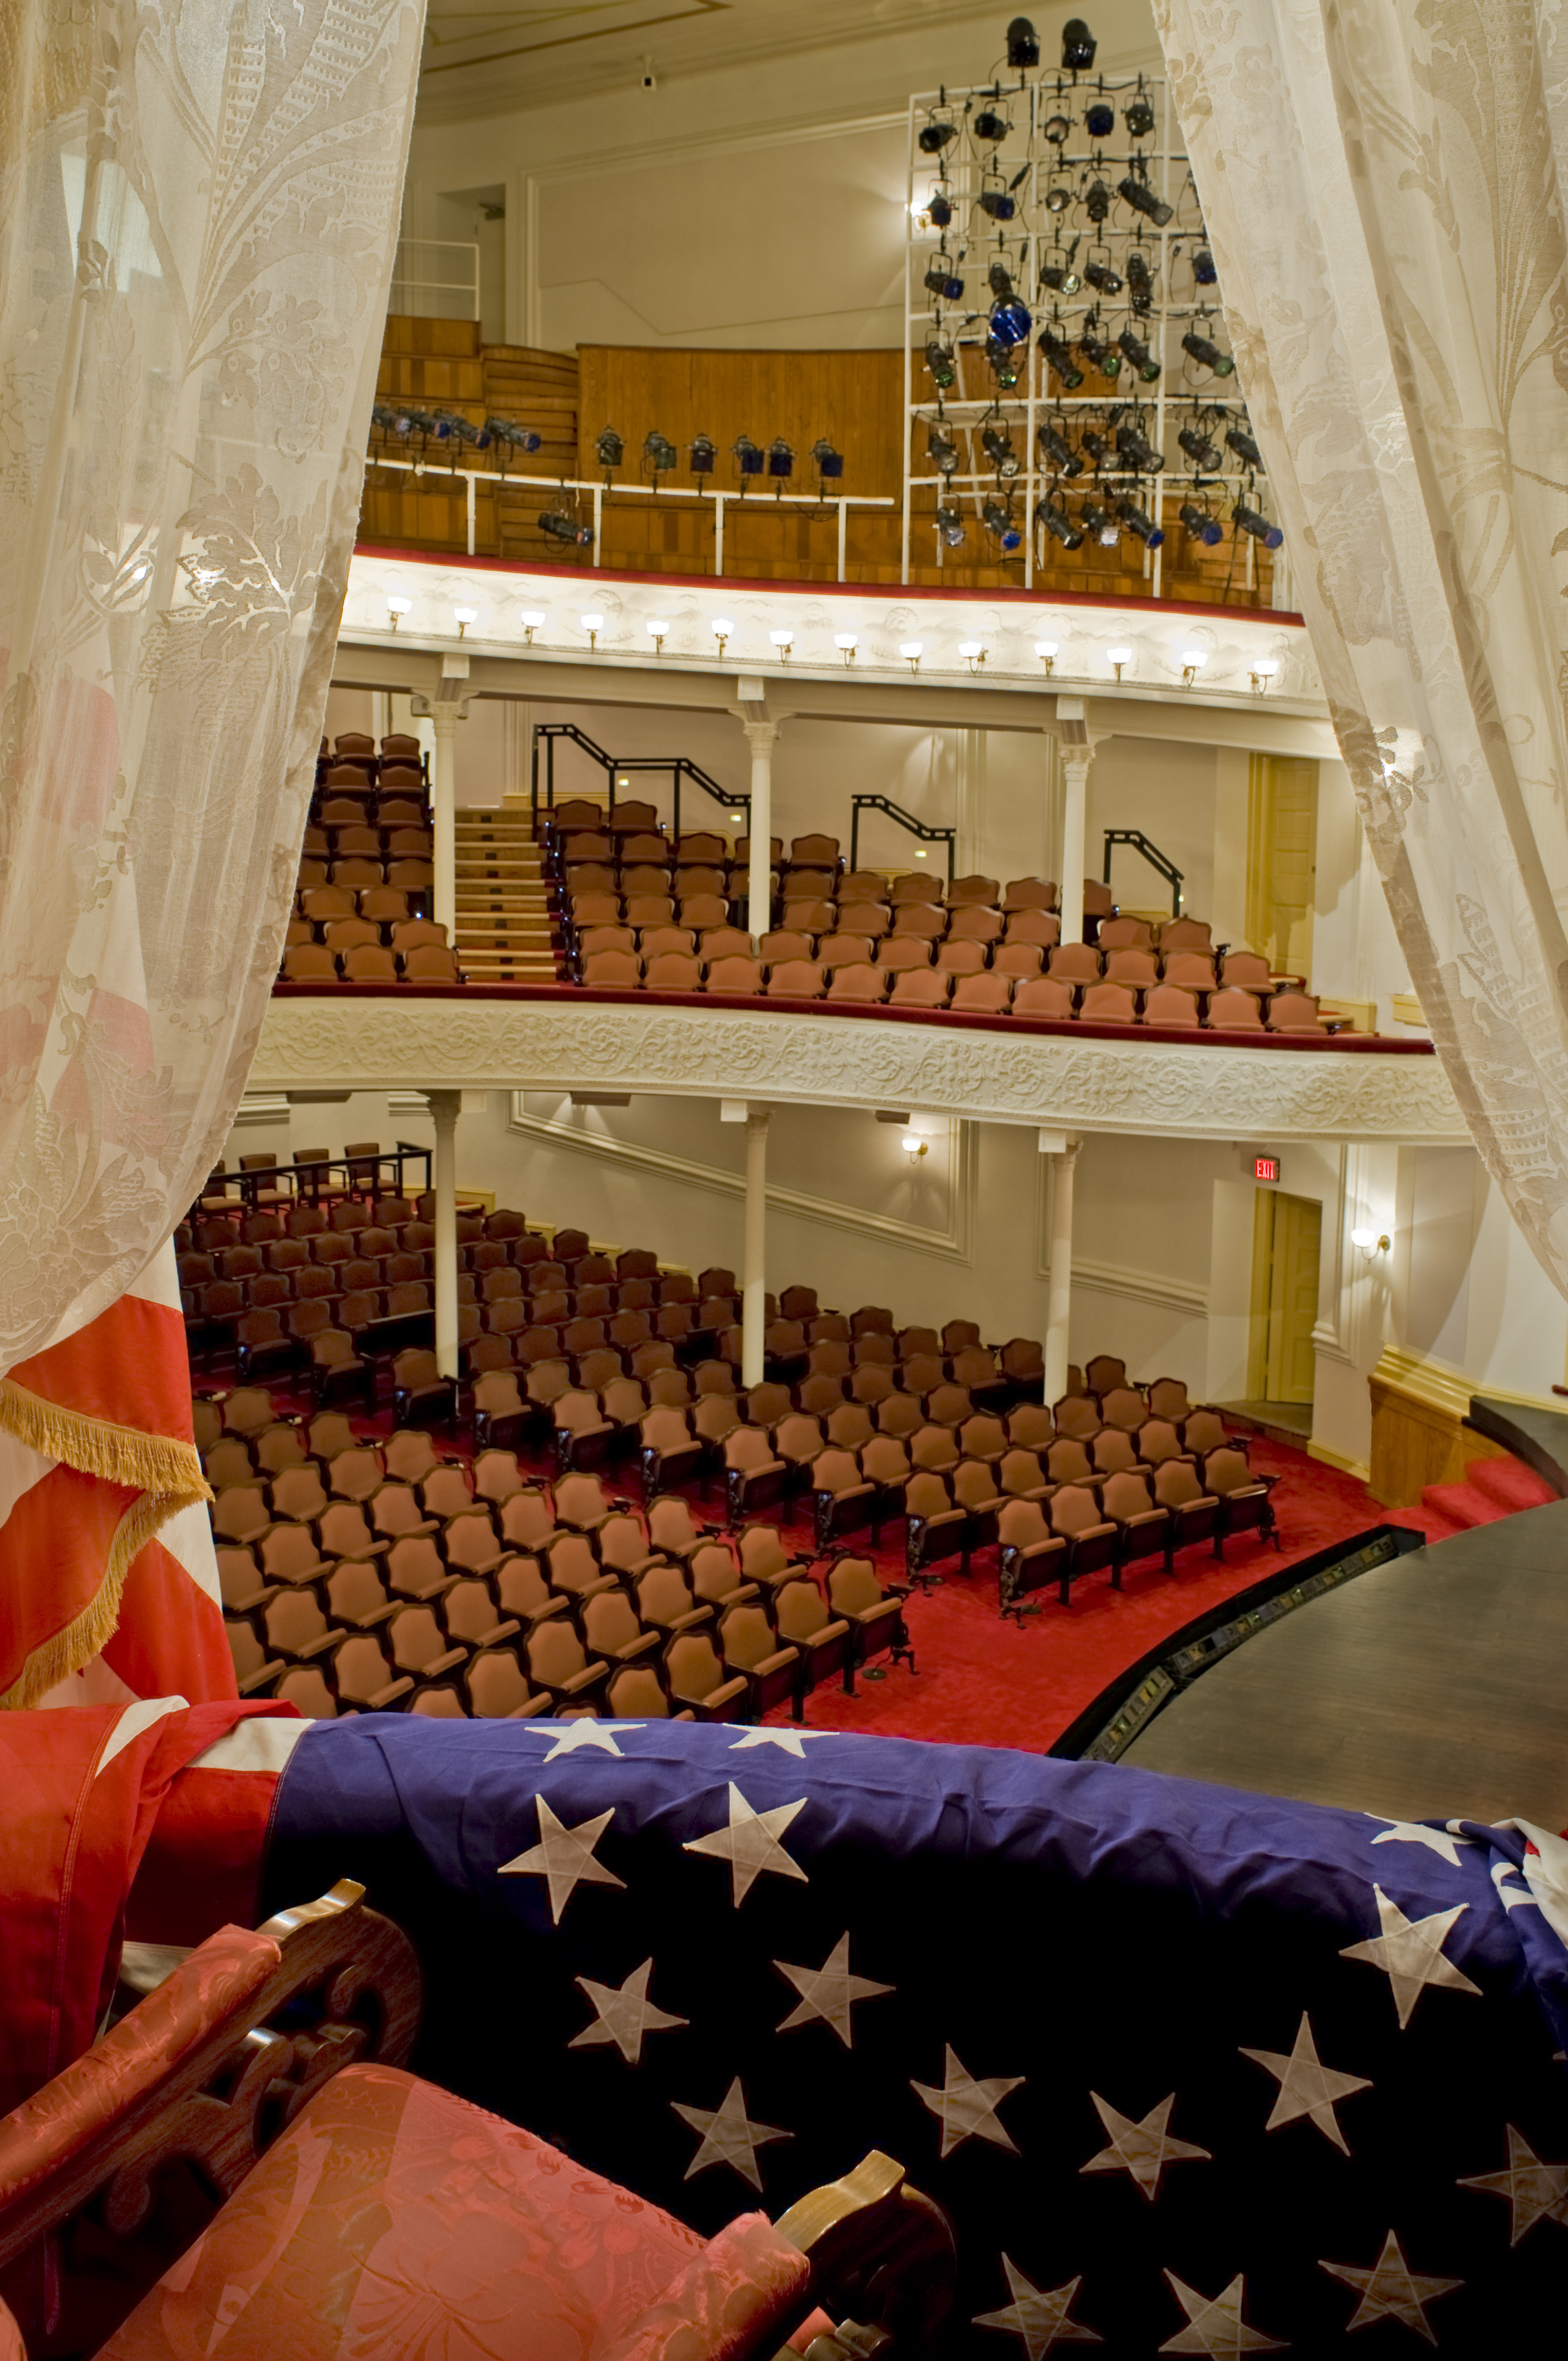 Image shows a view from the Presidential Box looking out toward the Ford's Theatre audience seating areas. It is a view President Lincoln would have seen from this spot on the nights he attended performances at Ford's Theatre during the 1860s.